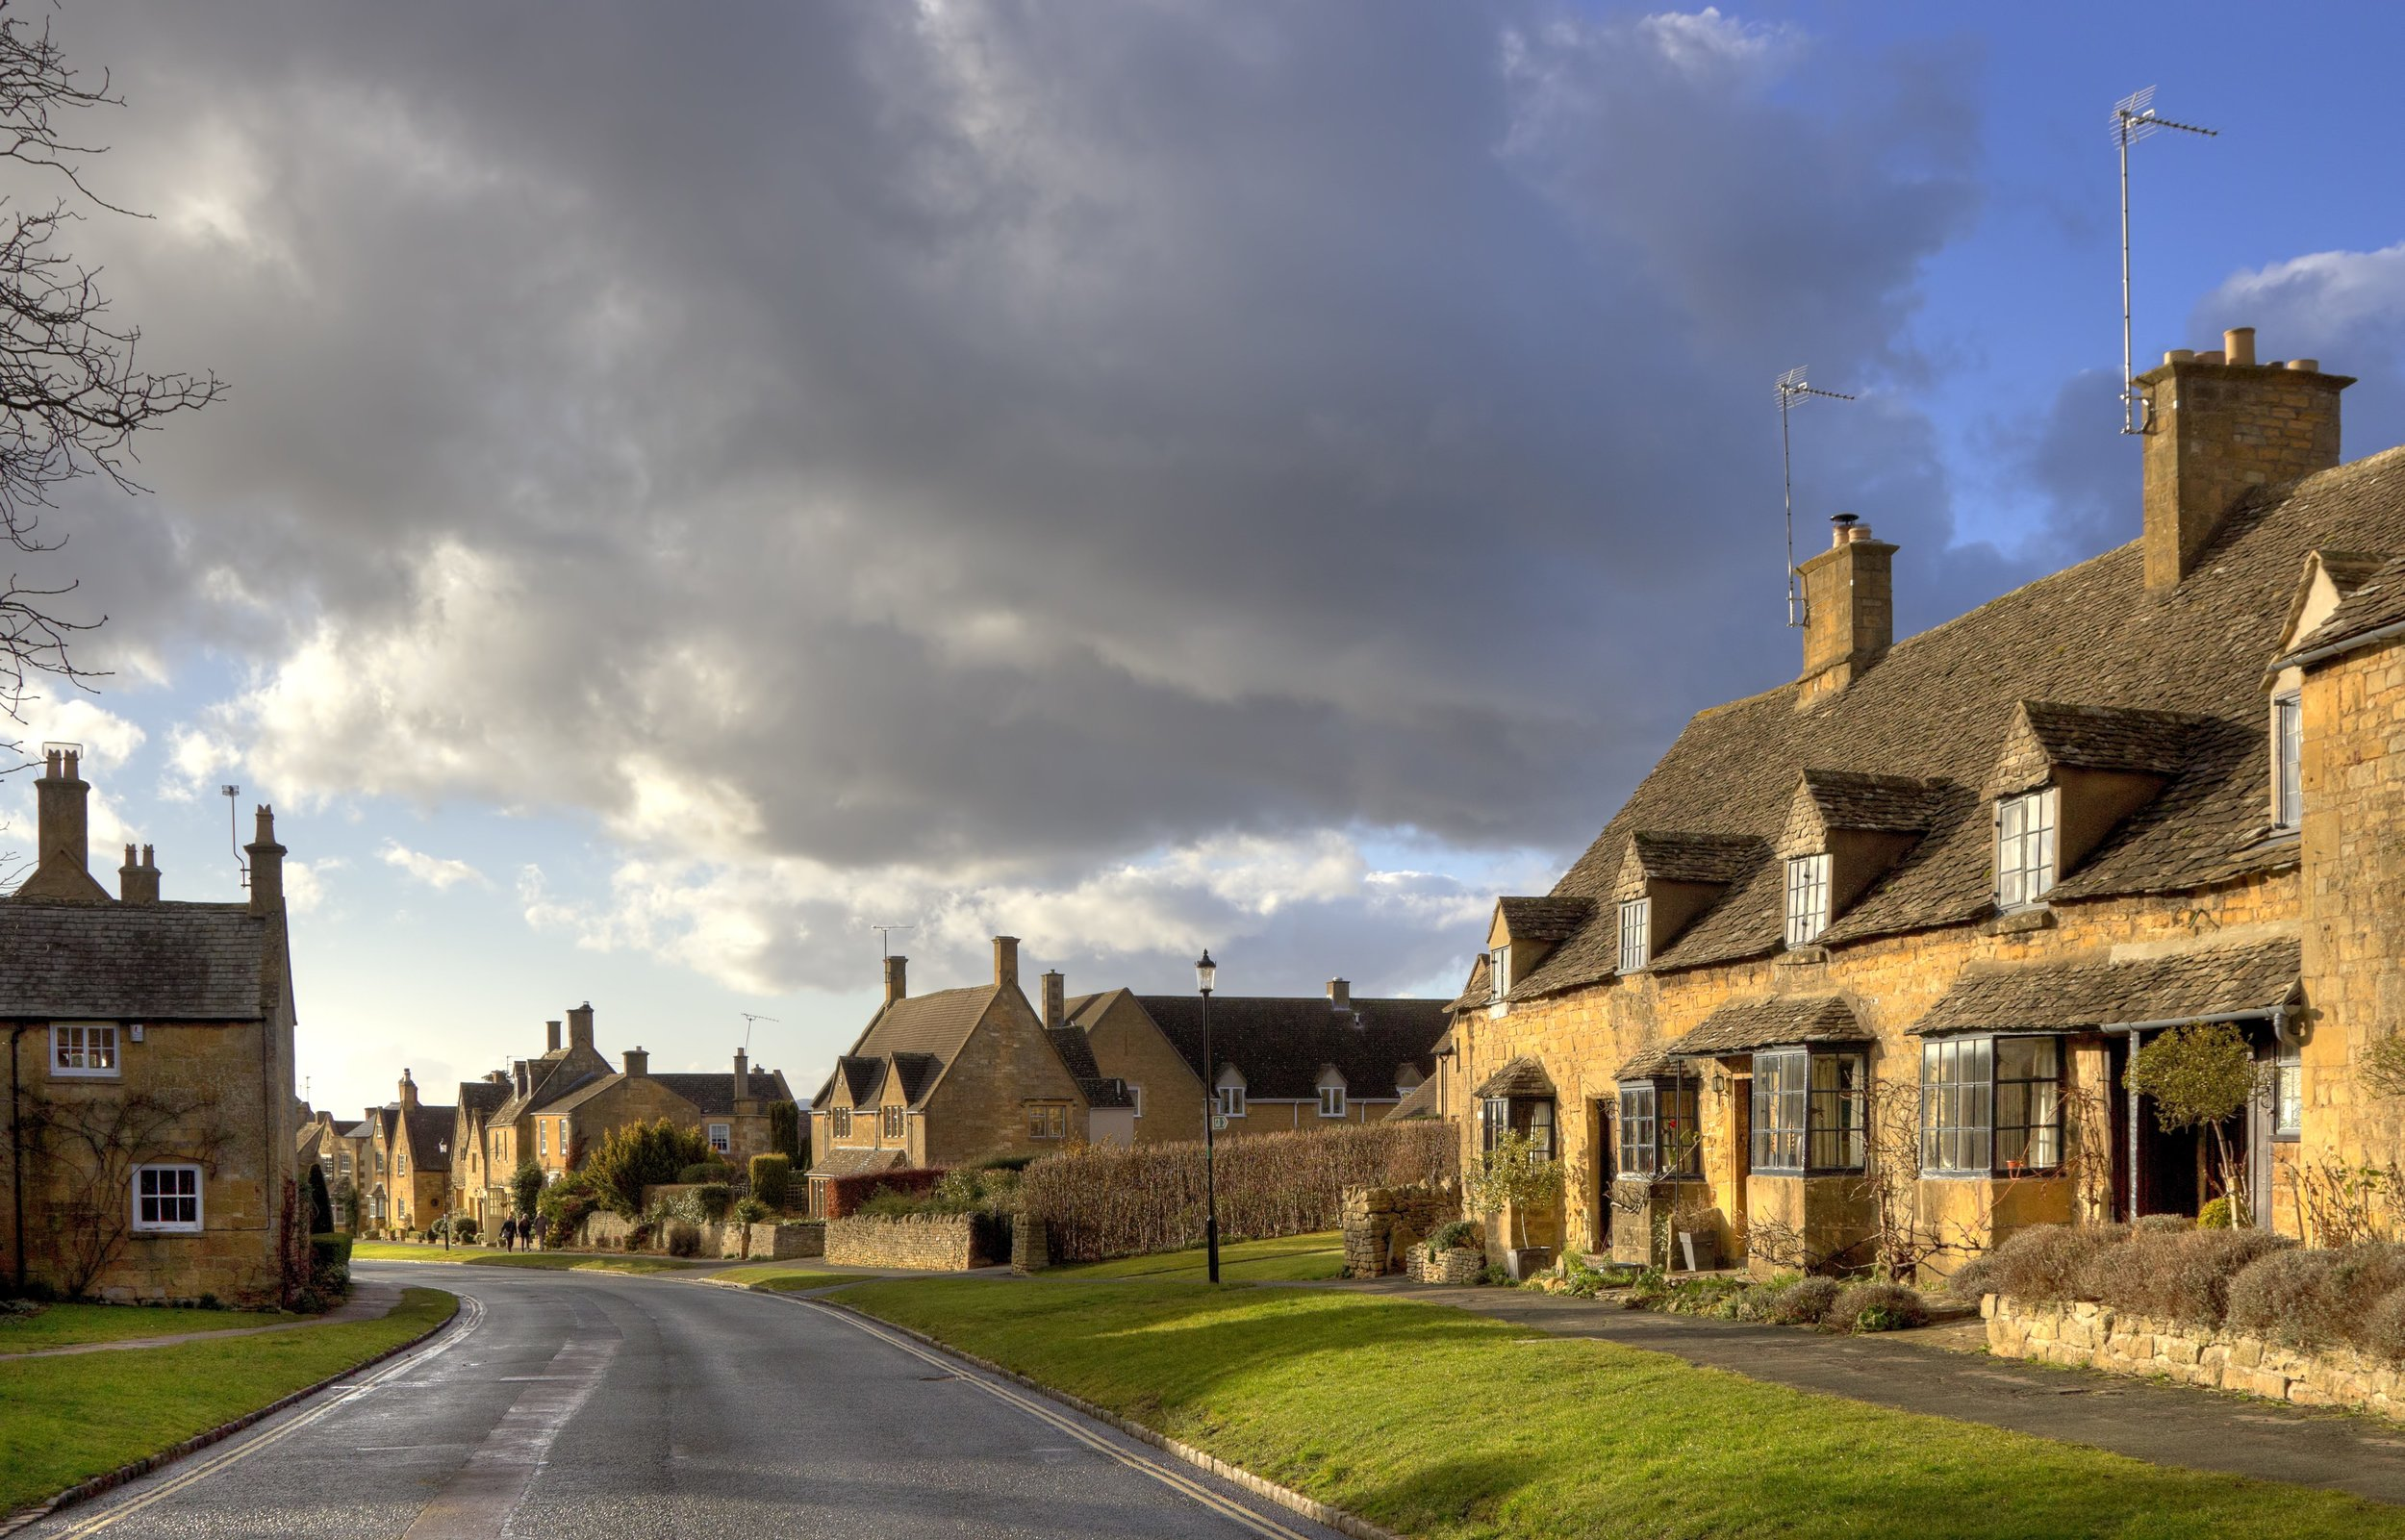 Broadway in Worcestershire.